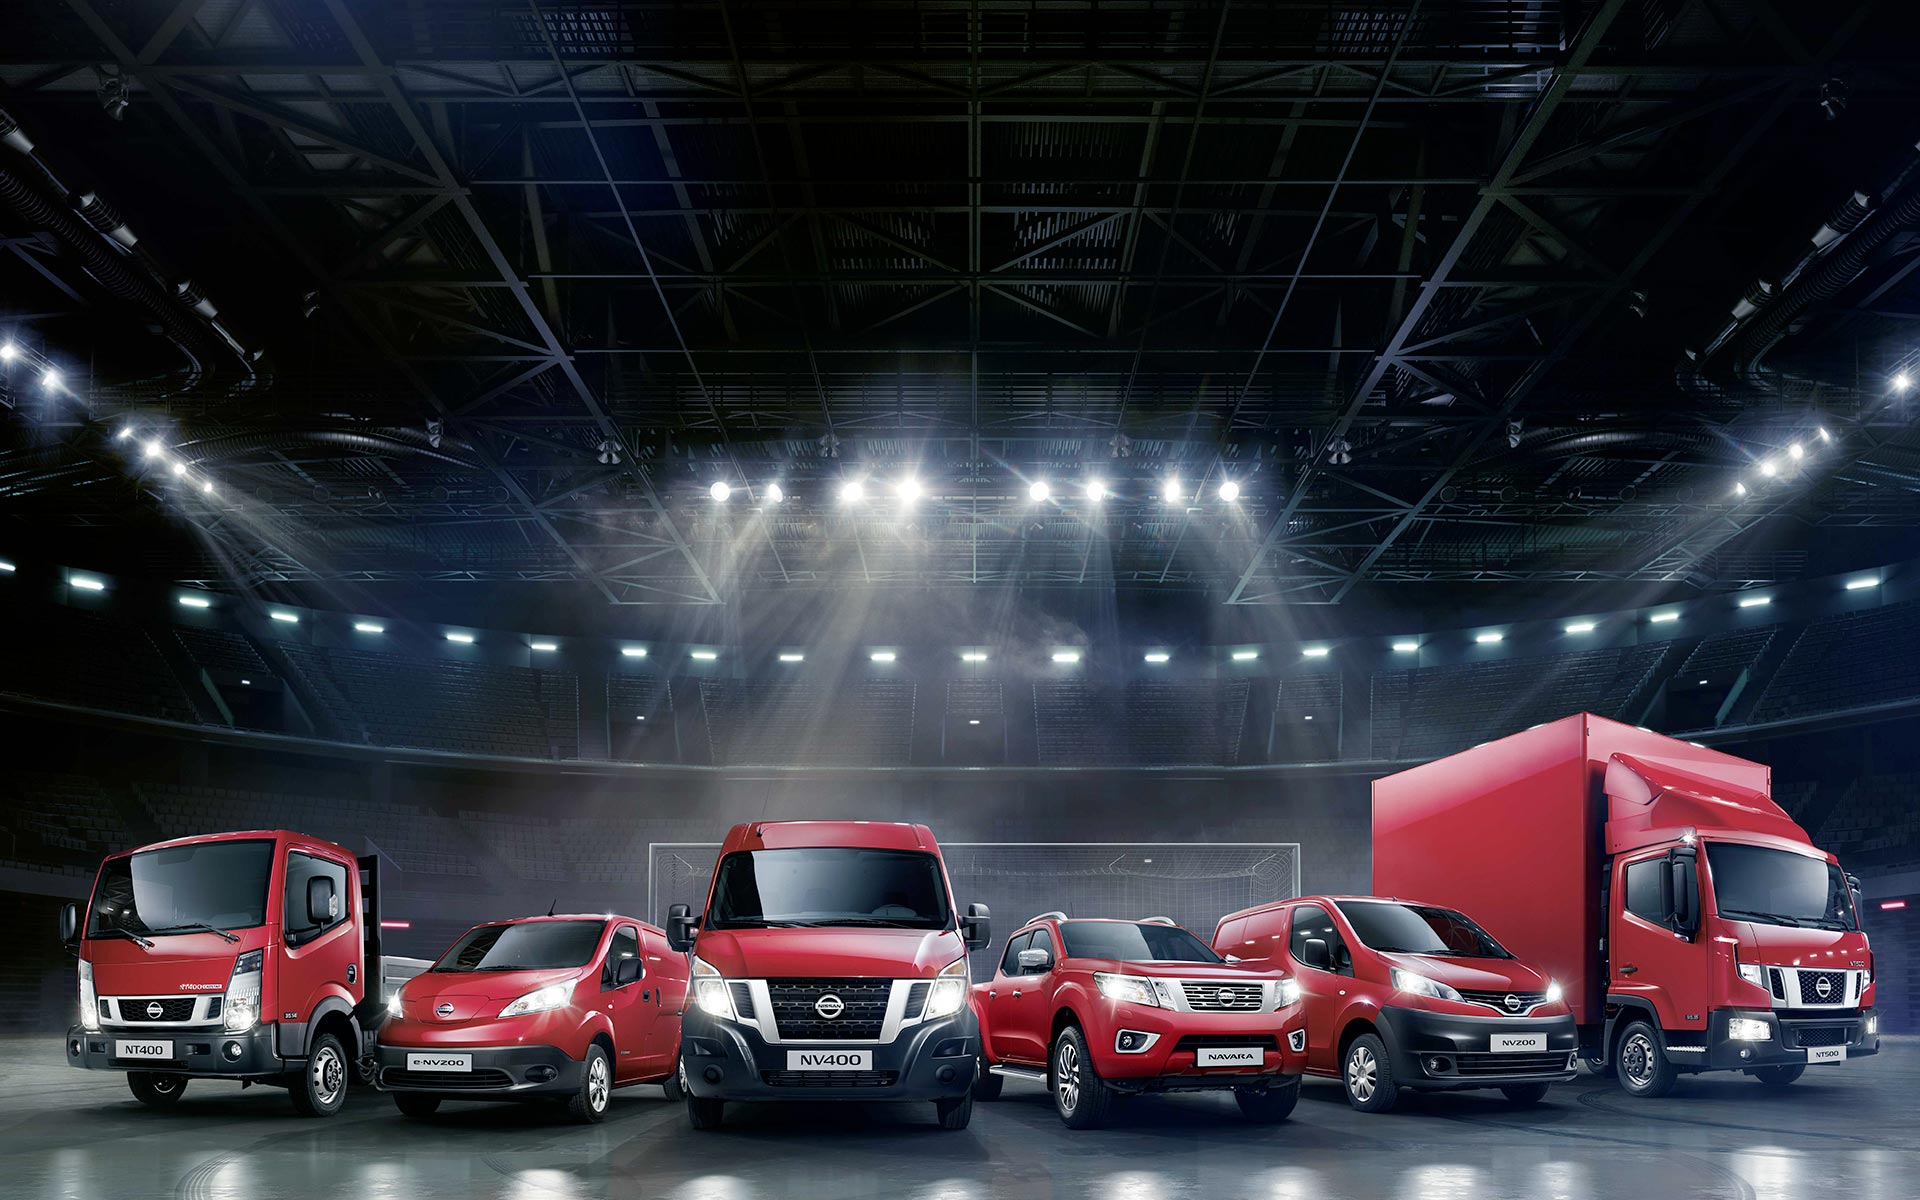 Nissan Utilitaires Genève Groupe Chevalley